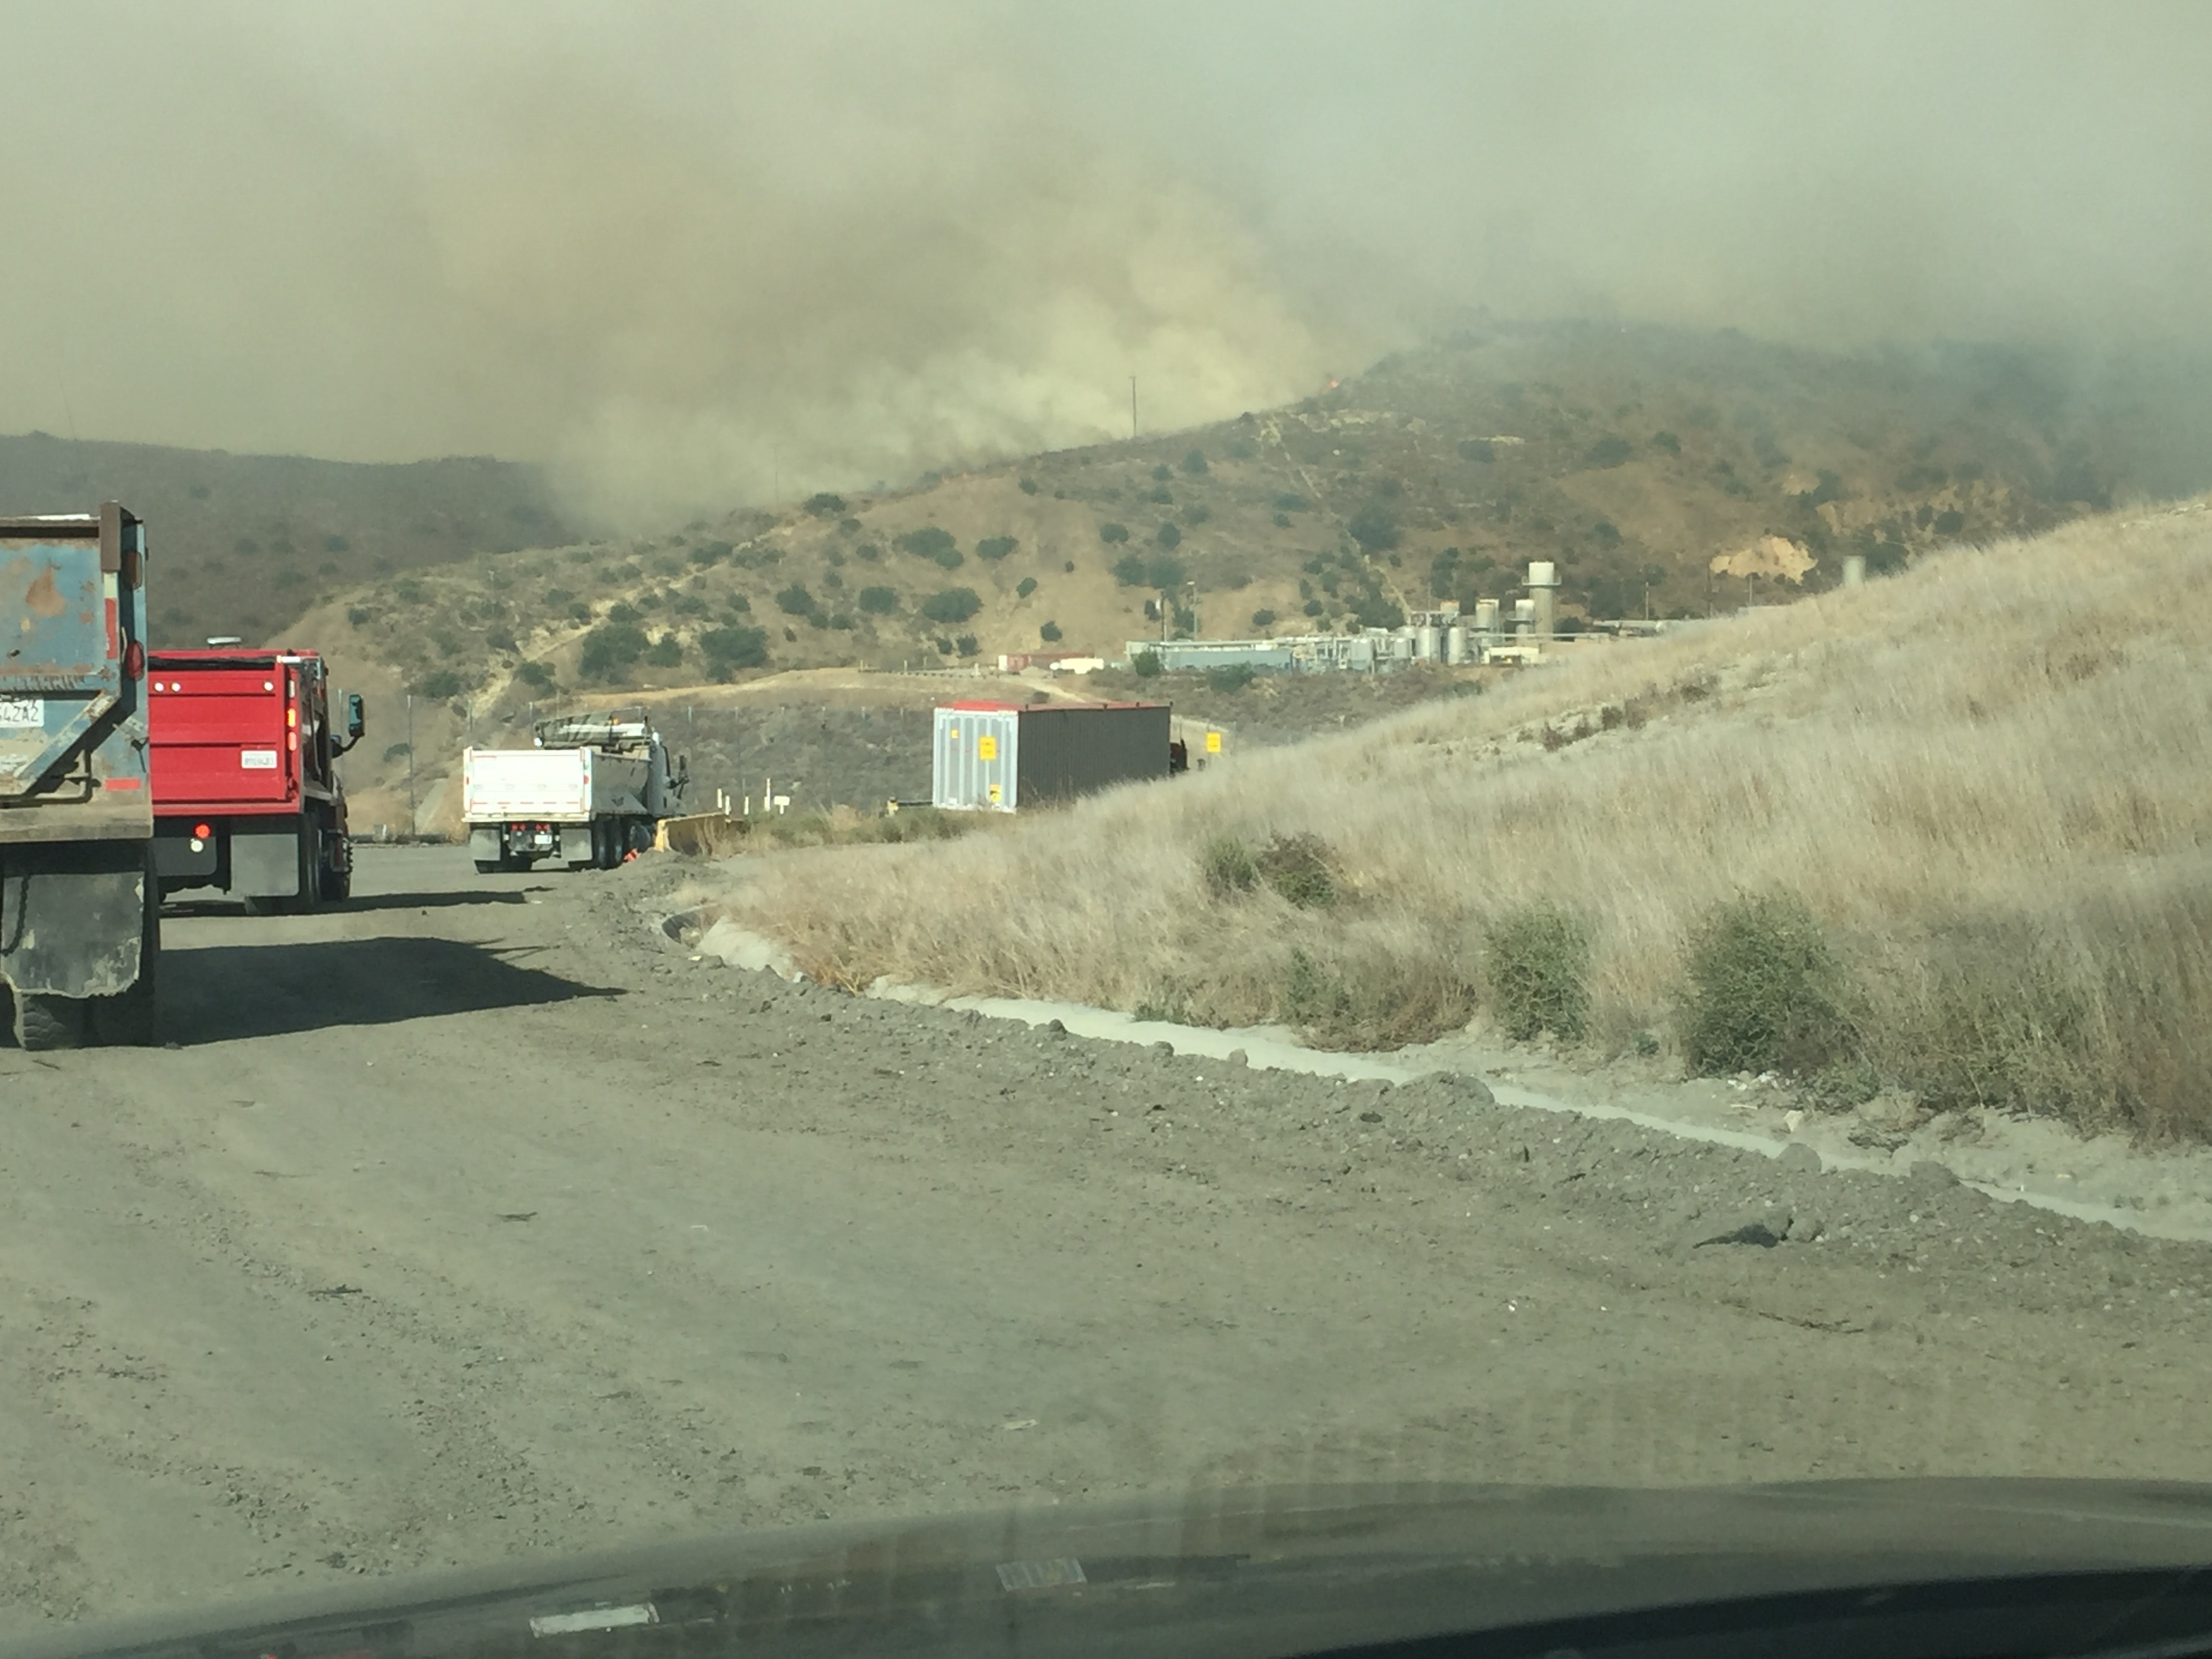 Trucks with smoke in the distance